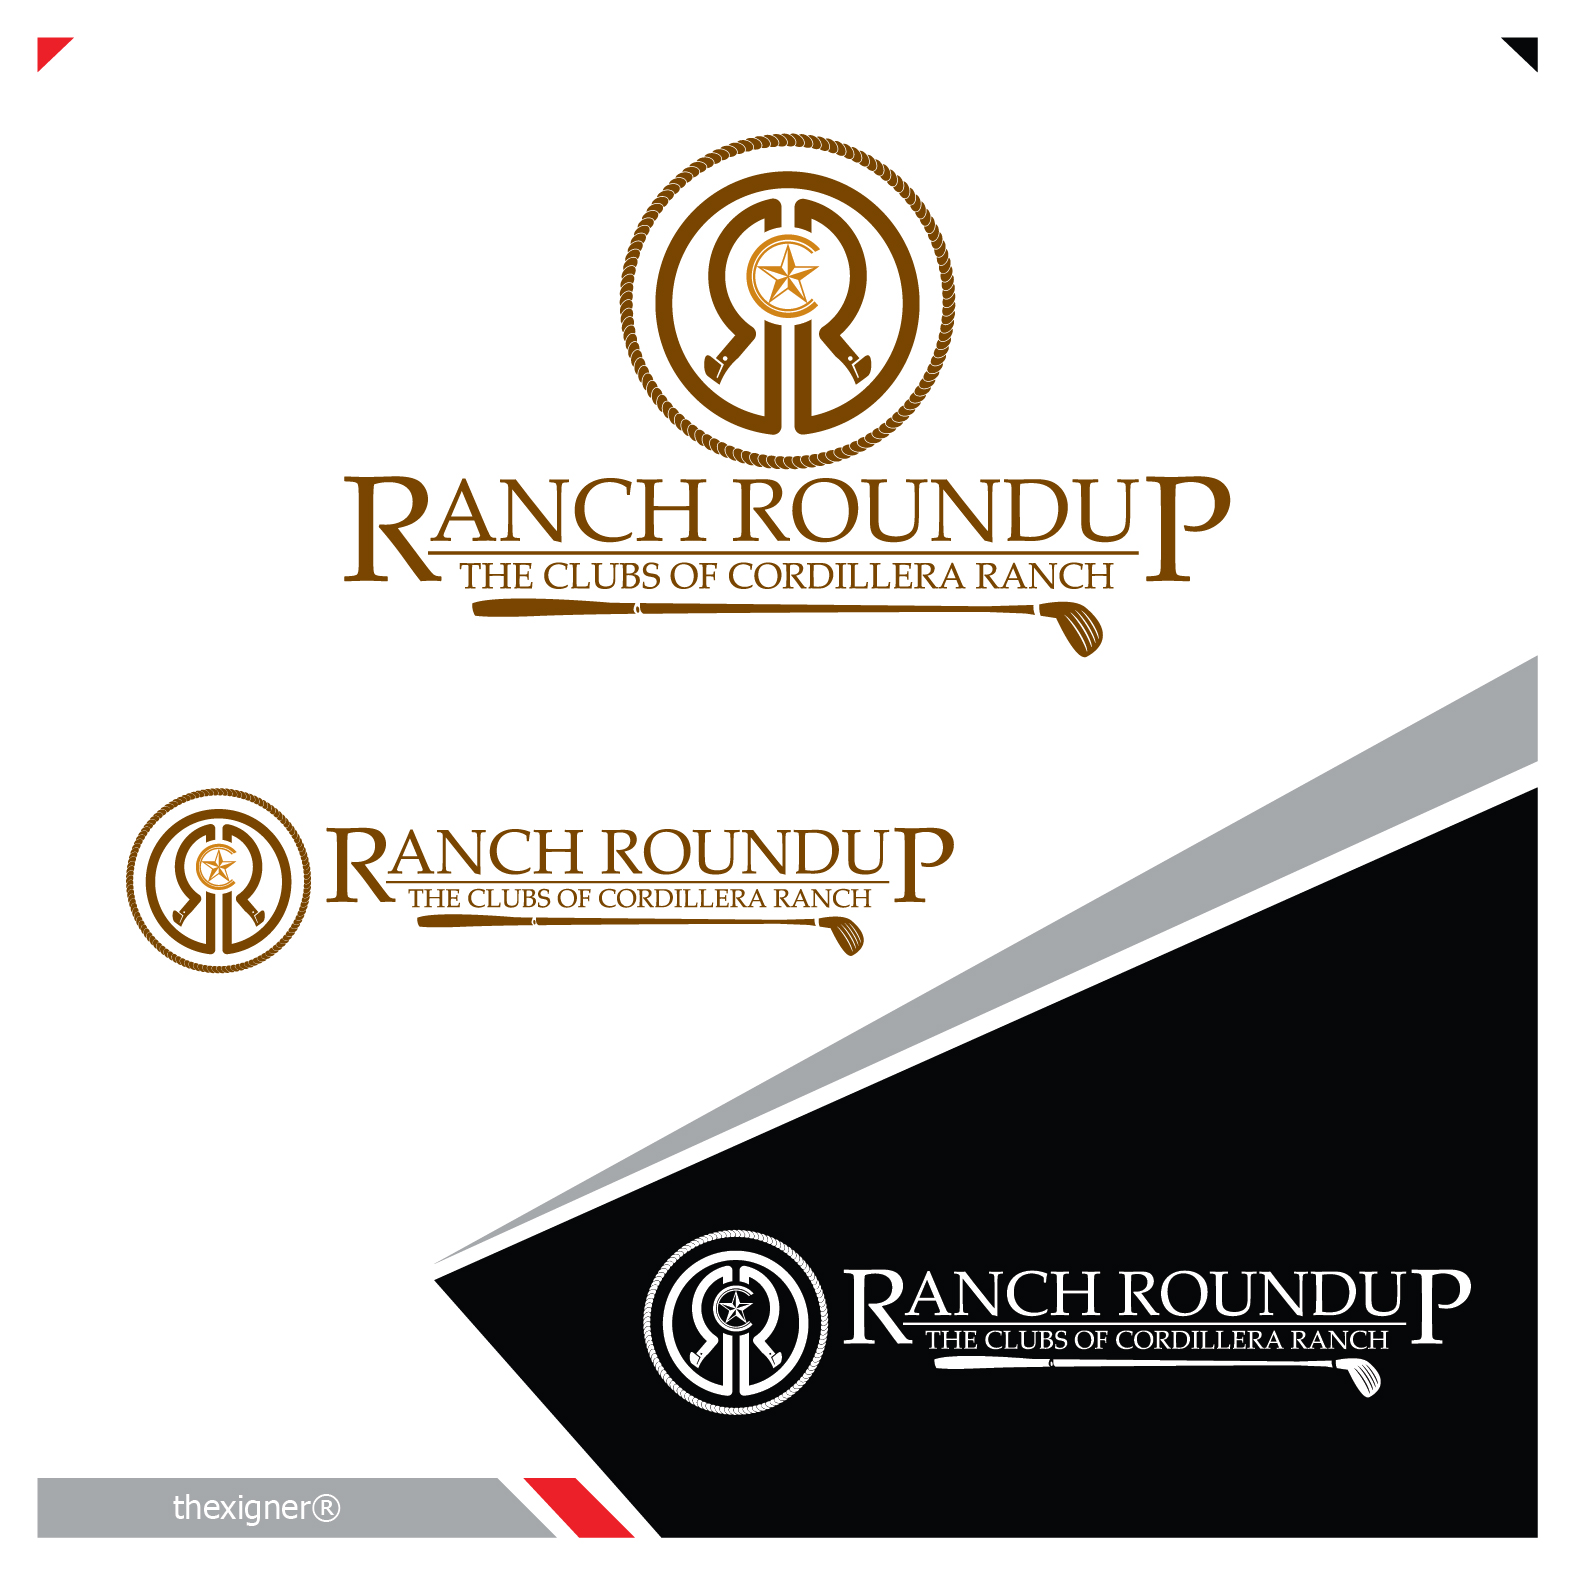 Logo Design by lagalag - Entry No. 44 in the Logo Design Contest Captivating Logo Design for Ranch Roundup.